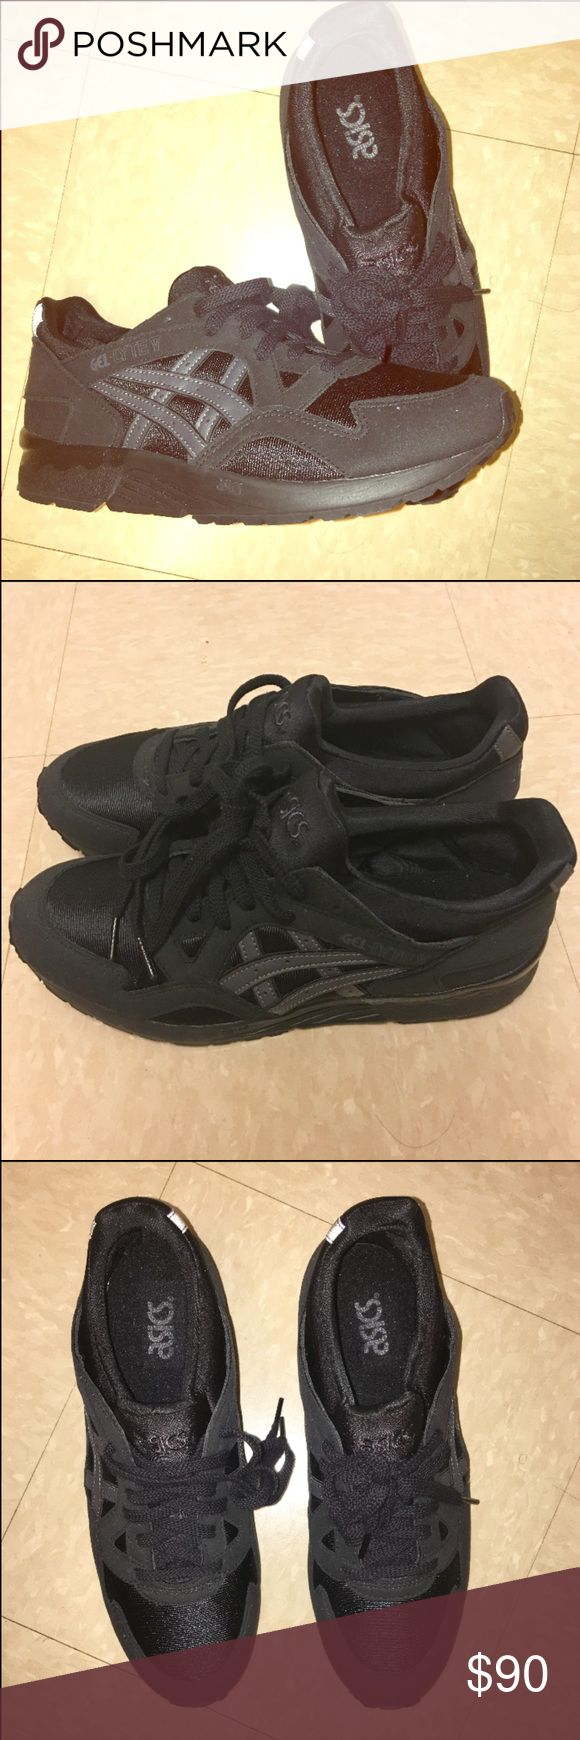 NEW All black Asics gel Lyte 7, 40, = W 8 - 9 NEW All black Asics gel Lyte  I purchased myself, never worn.  NWOT  No returns, happy shopping :) Nike Big boy US 7 EURO 40  Equal to Women's US 8-8.5 CM 25.25 Asics Shoes Sneakers